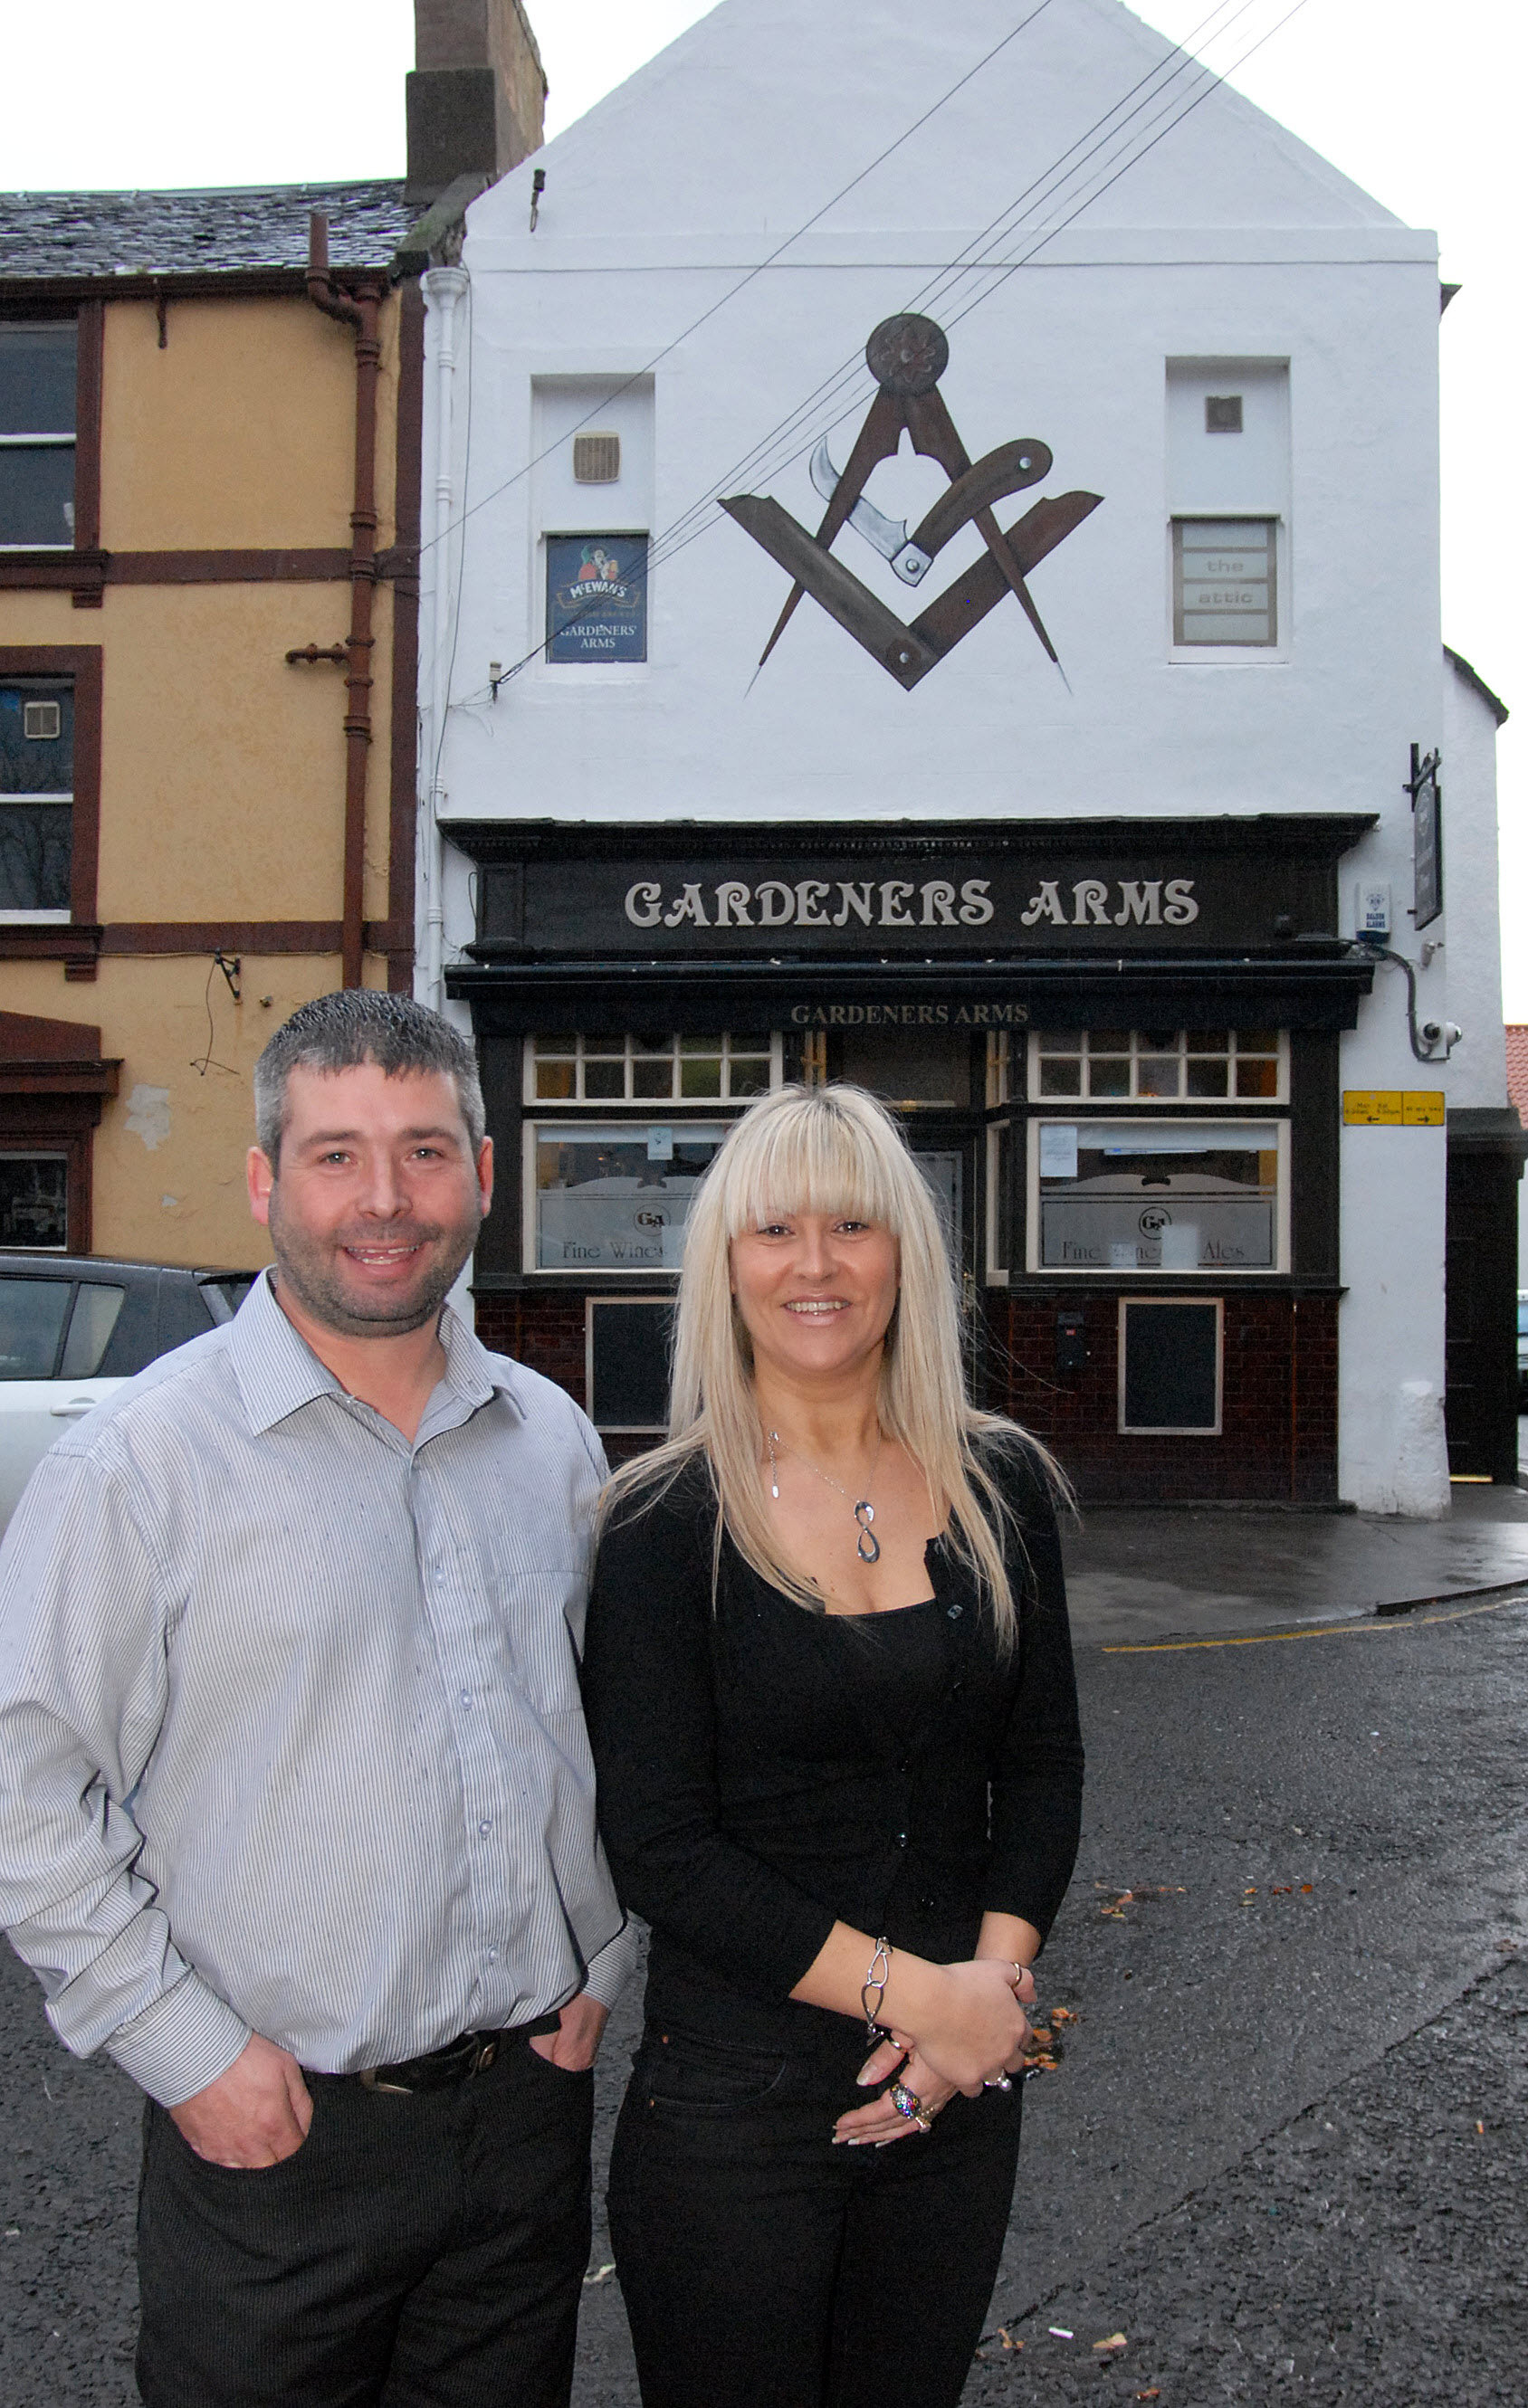 Michael and Wendy Peters outside the Gardeners Arms in 2011. Part of the former The Pheasant pub (now Jo's Kitchen), can be seen on the left of the image